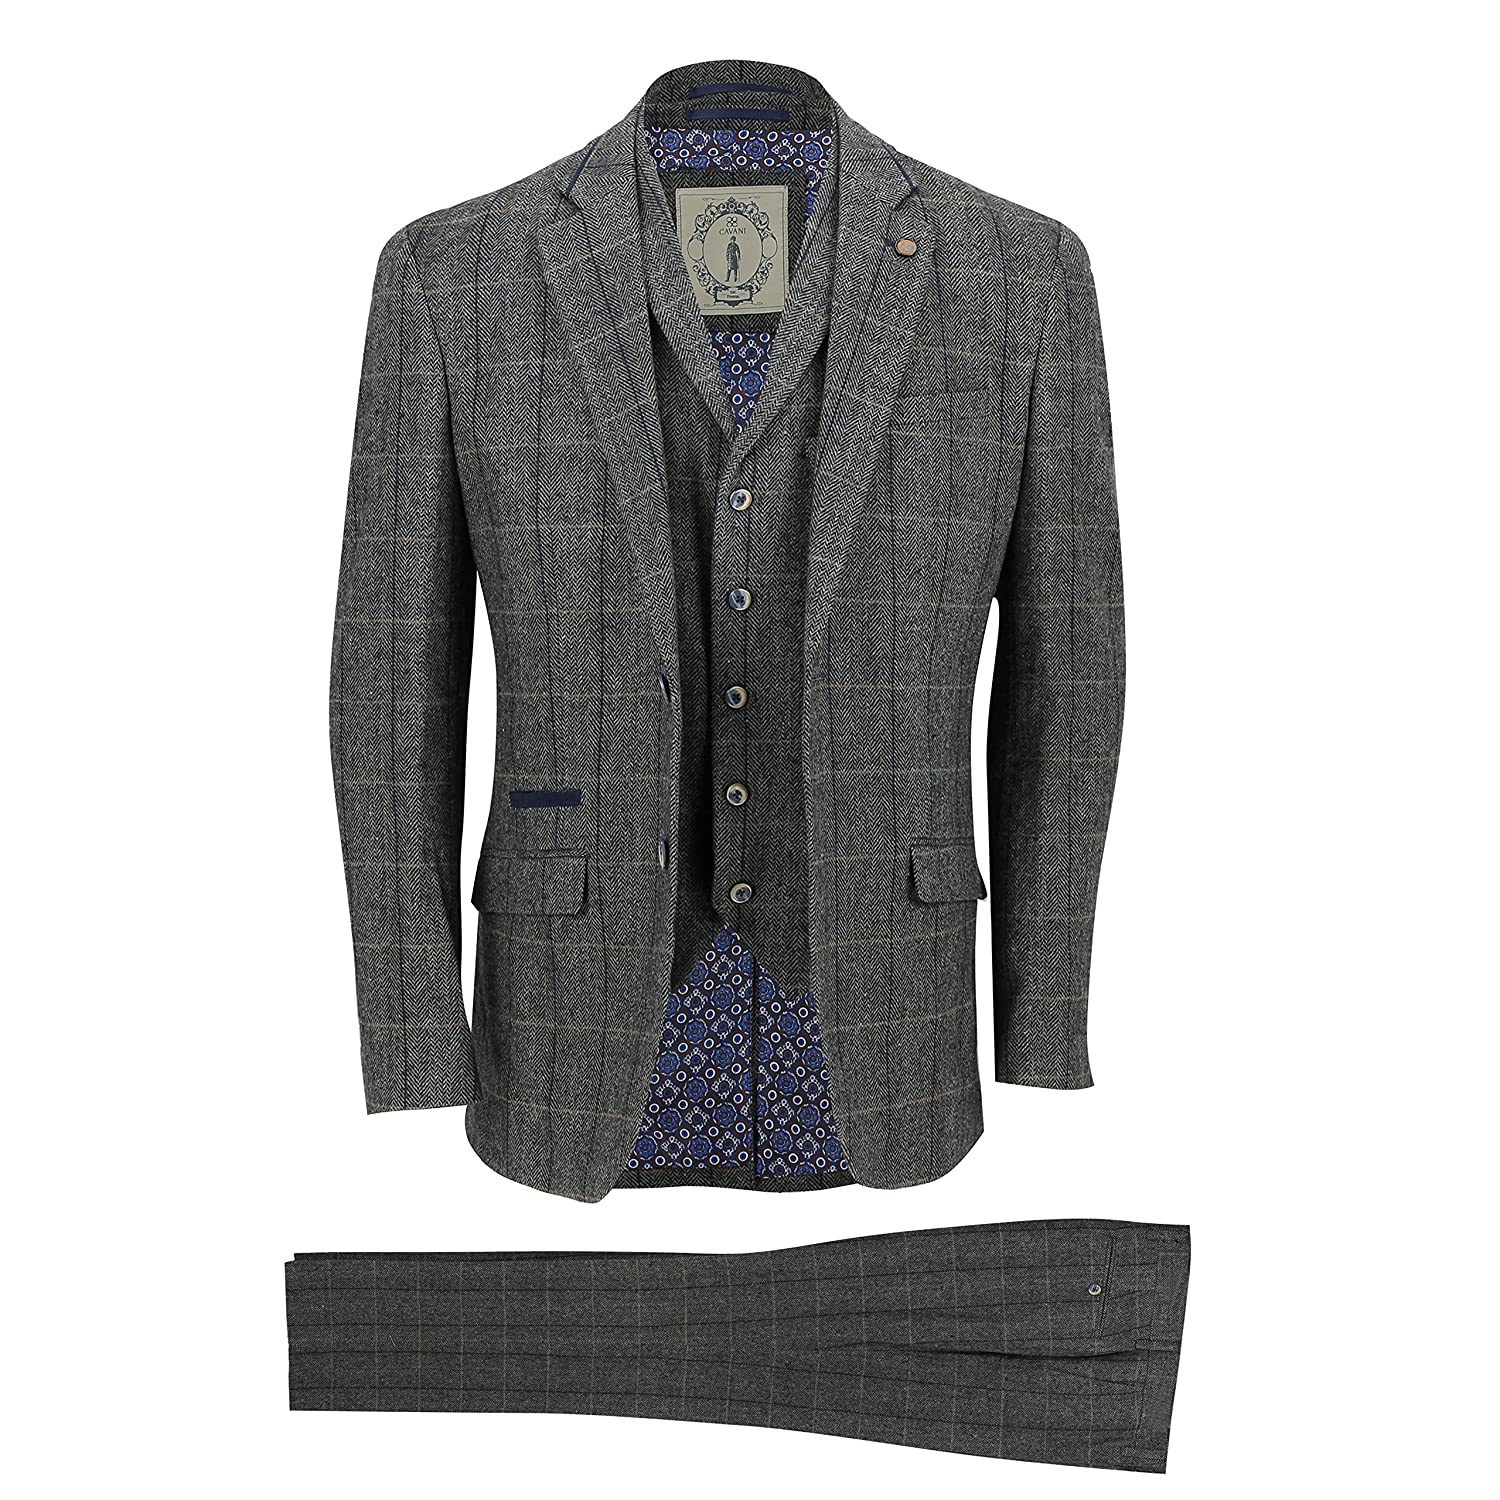 Cavani Mens 3 Piece Tweed Suit Vintage Herringbone Grey Check Retro Slim Fit Jacket, Waistcoat, Trousers